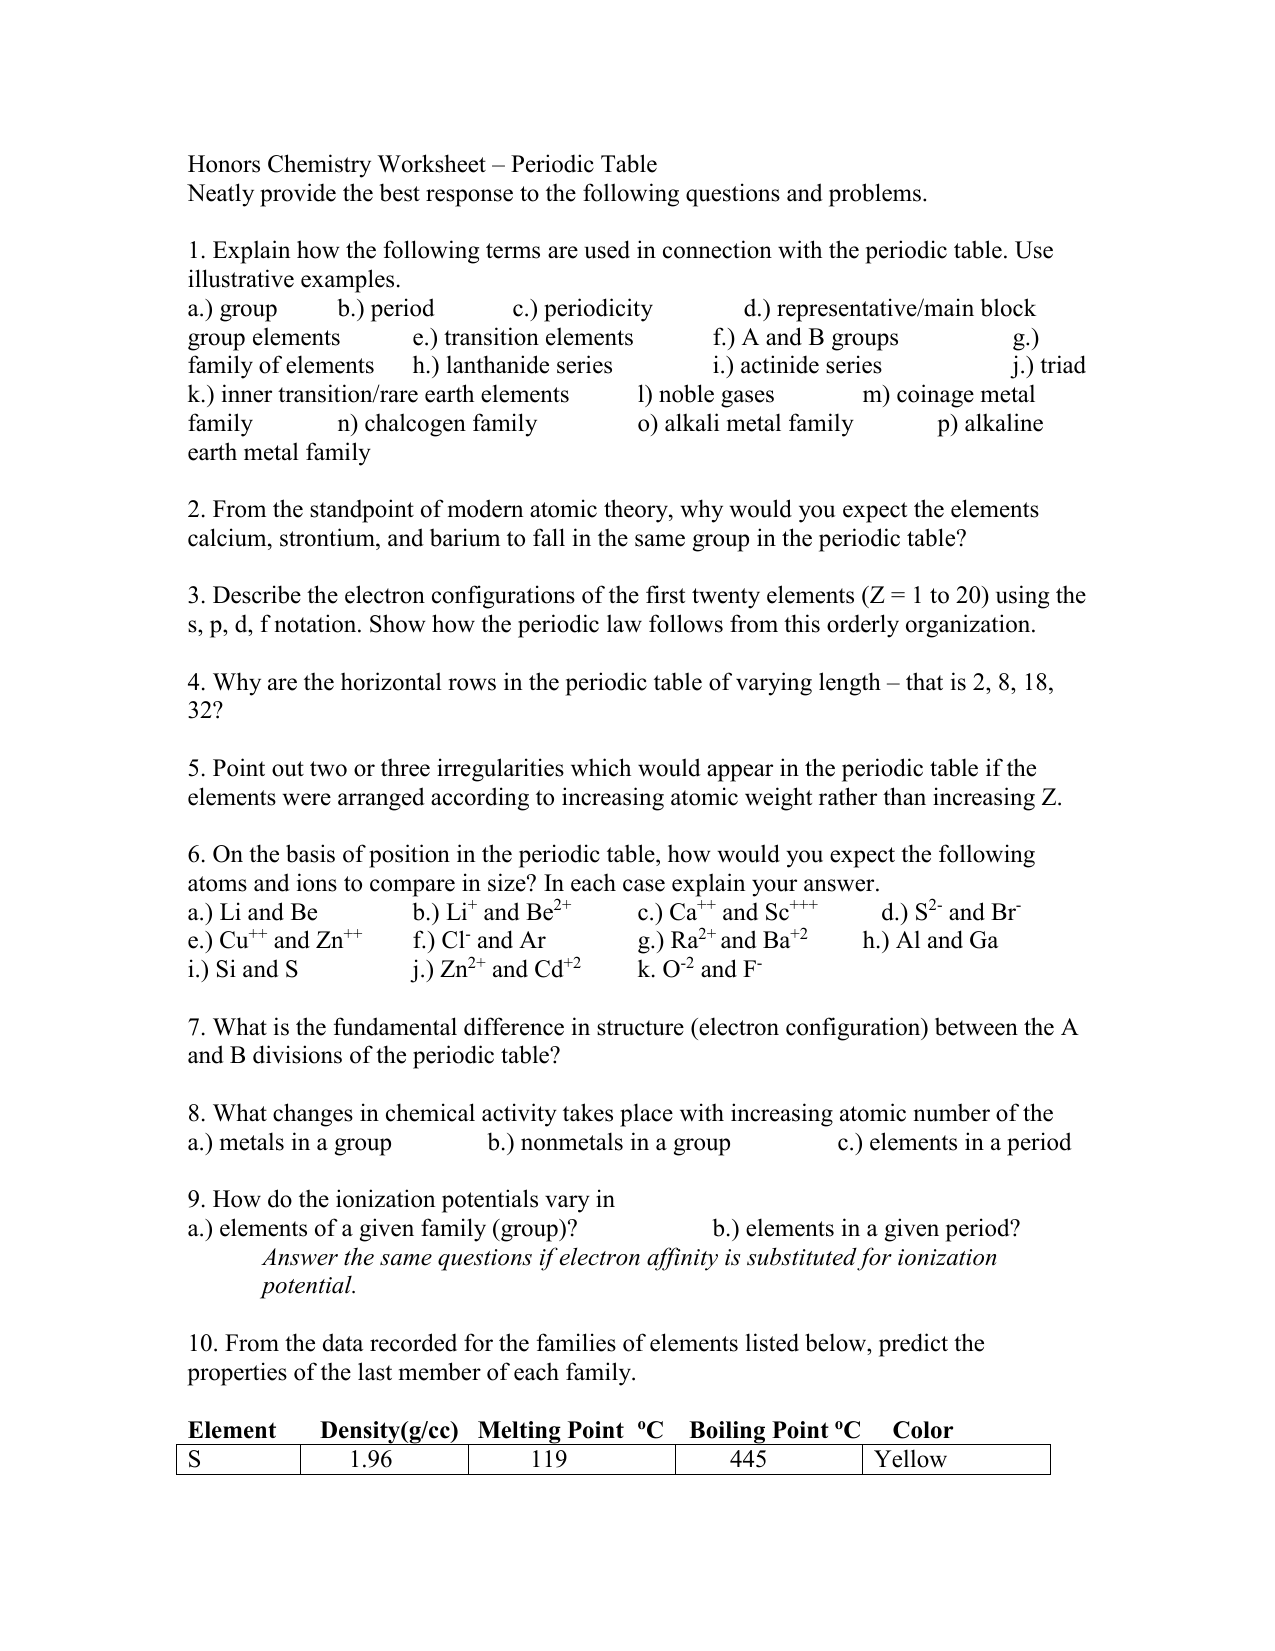 Honors Chemistry Worksheet Periodic Table